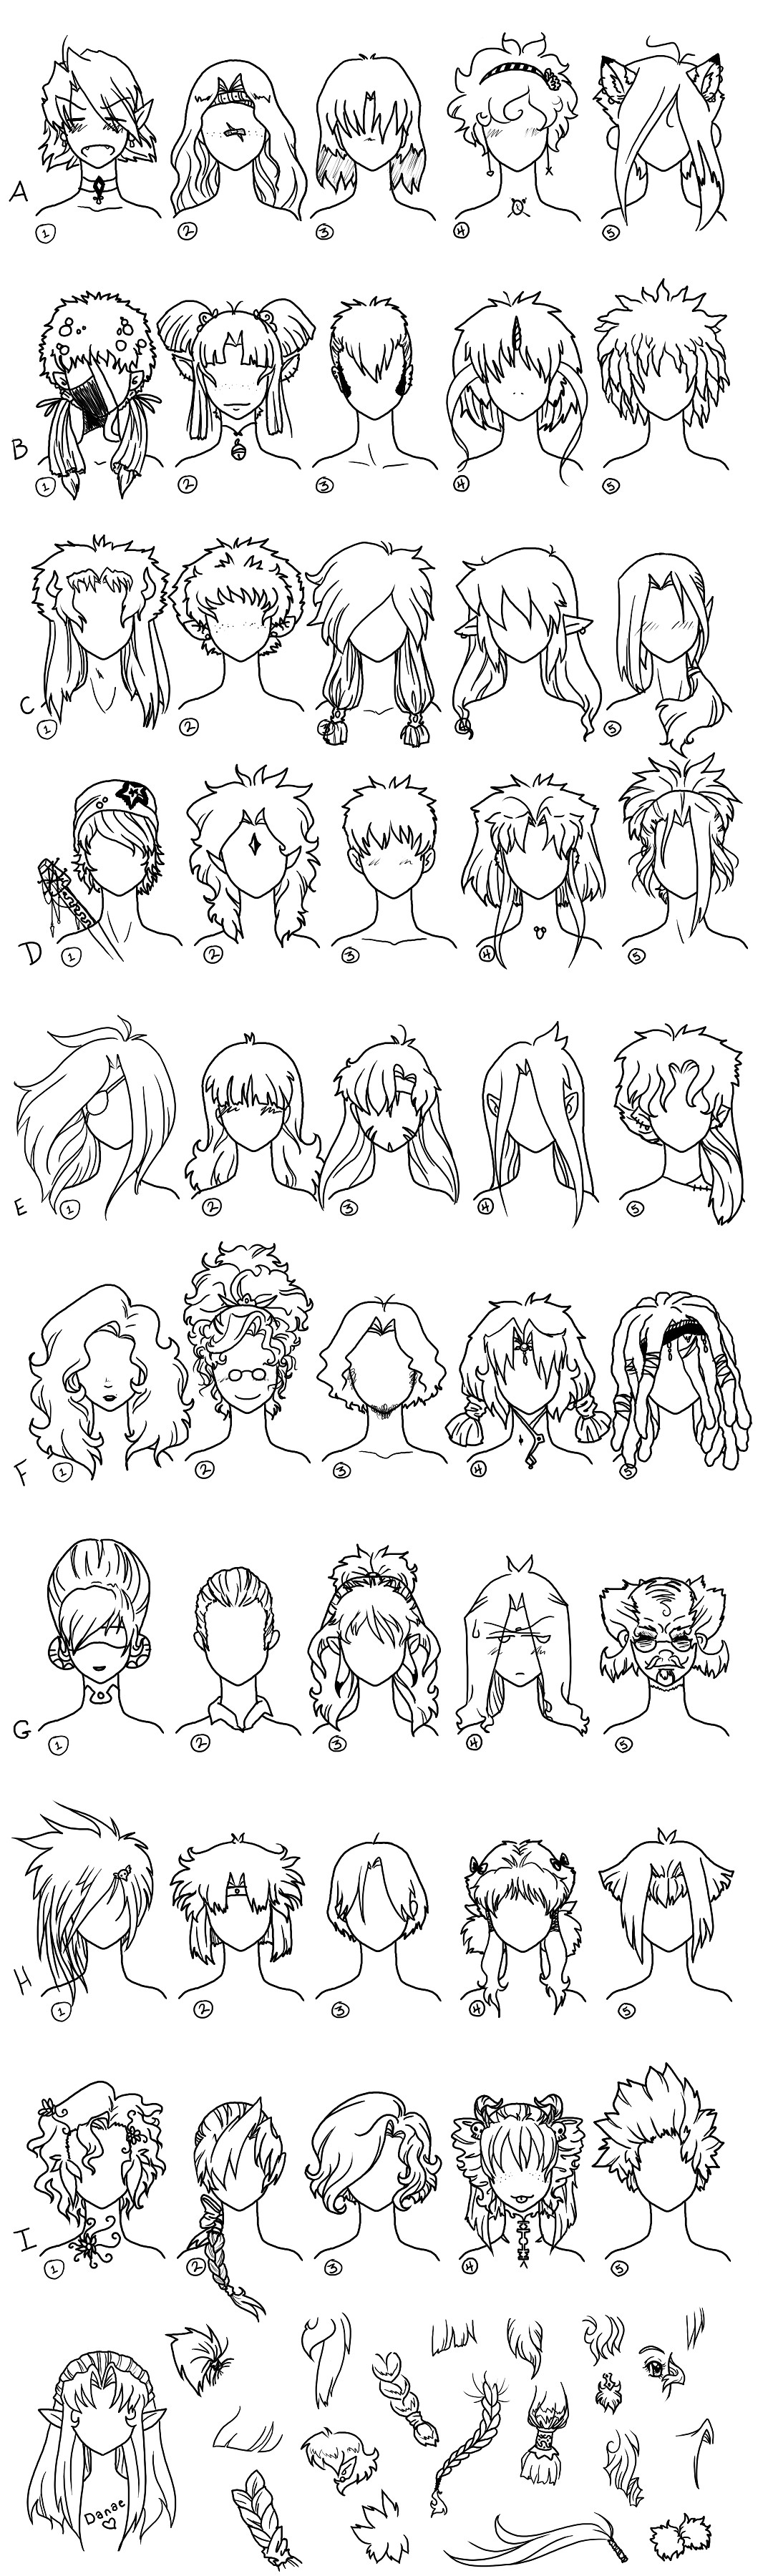 Hair Reference Page 1 by Frenehld on DeviantArt